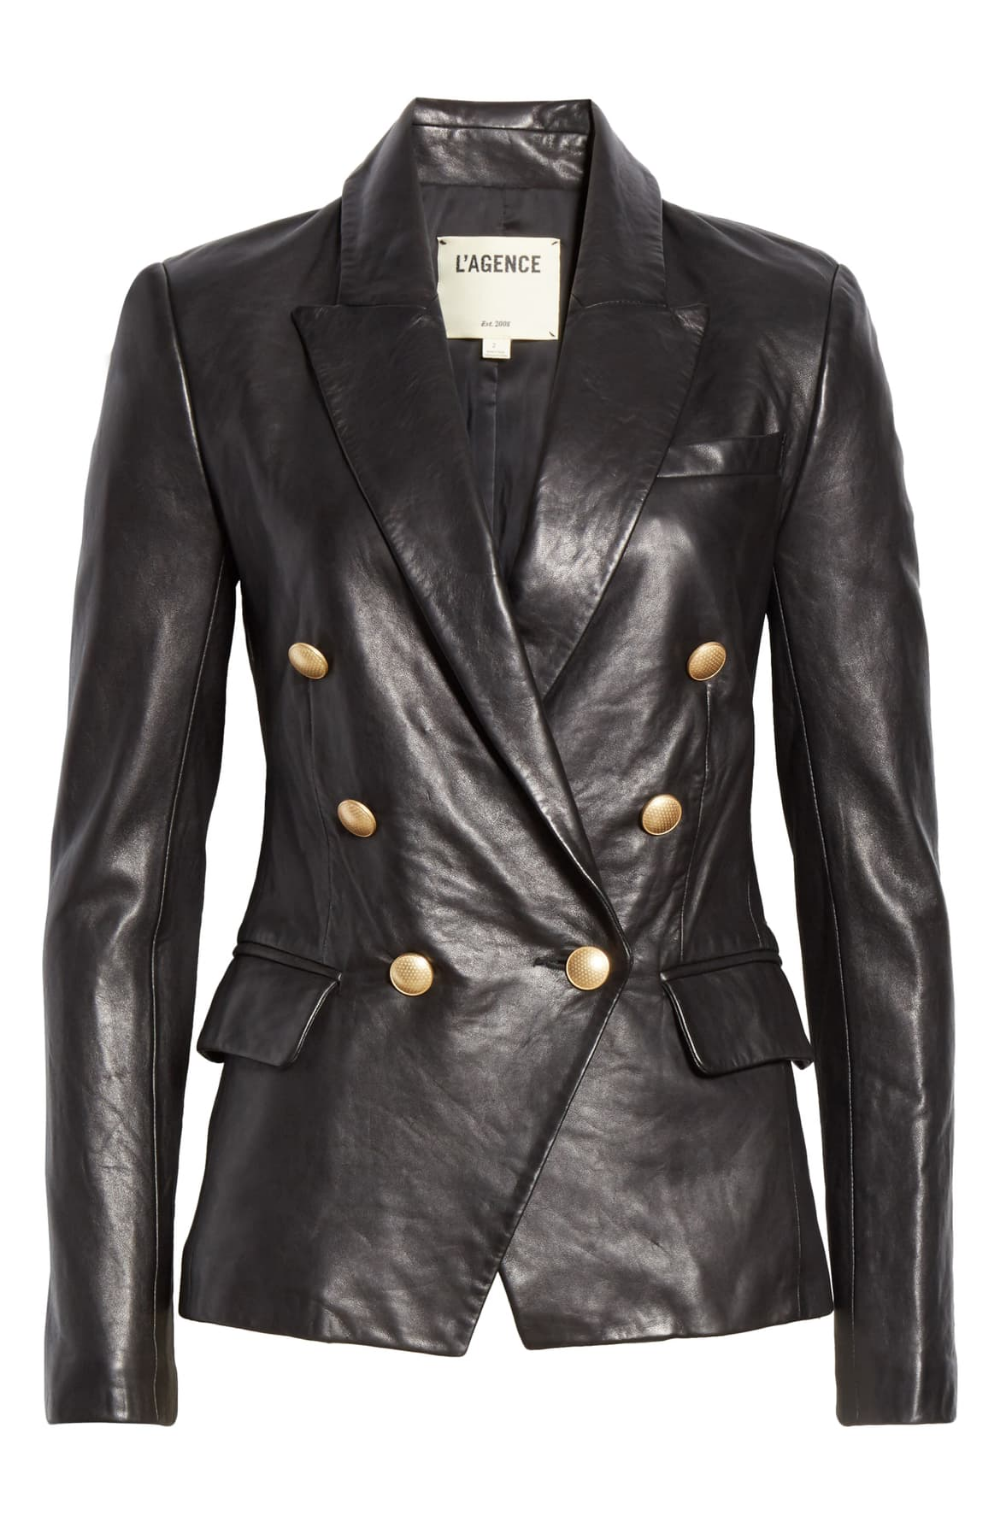 L Agence Kenzie Double Breasted Leather Blazer Nordstrom Leather Blazer Black Leather Blazer Black Leather [ 1533 x 1000 Pixel ]